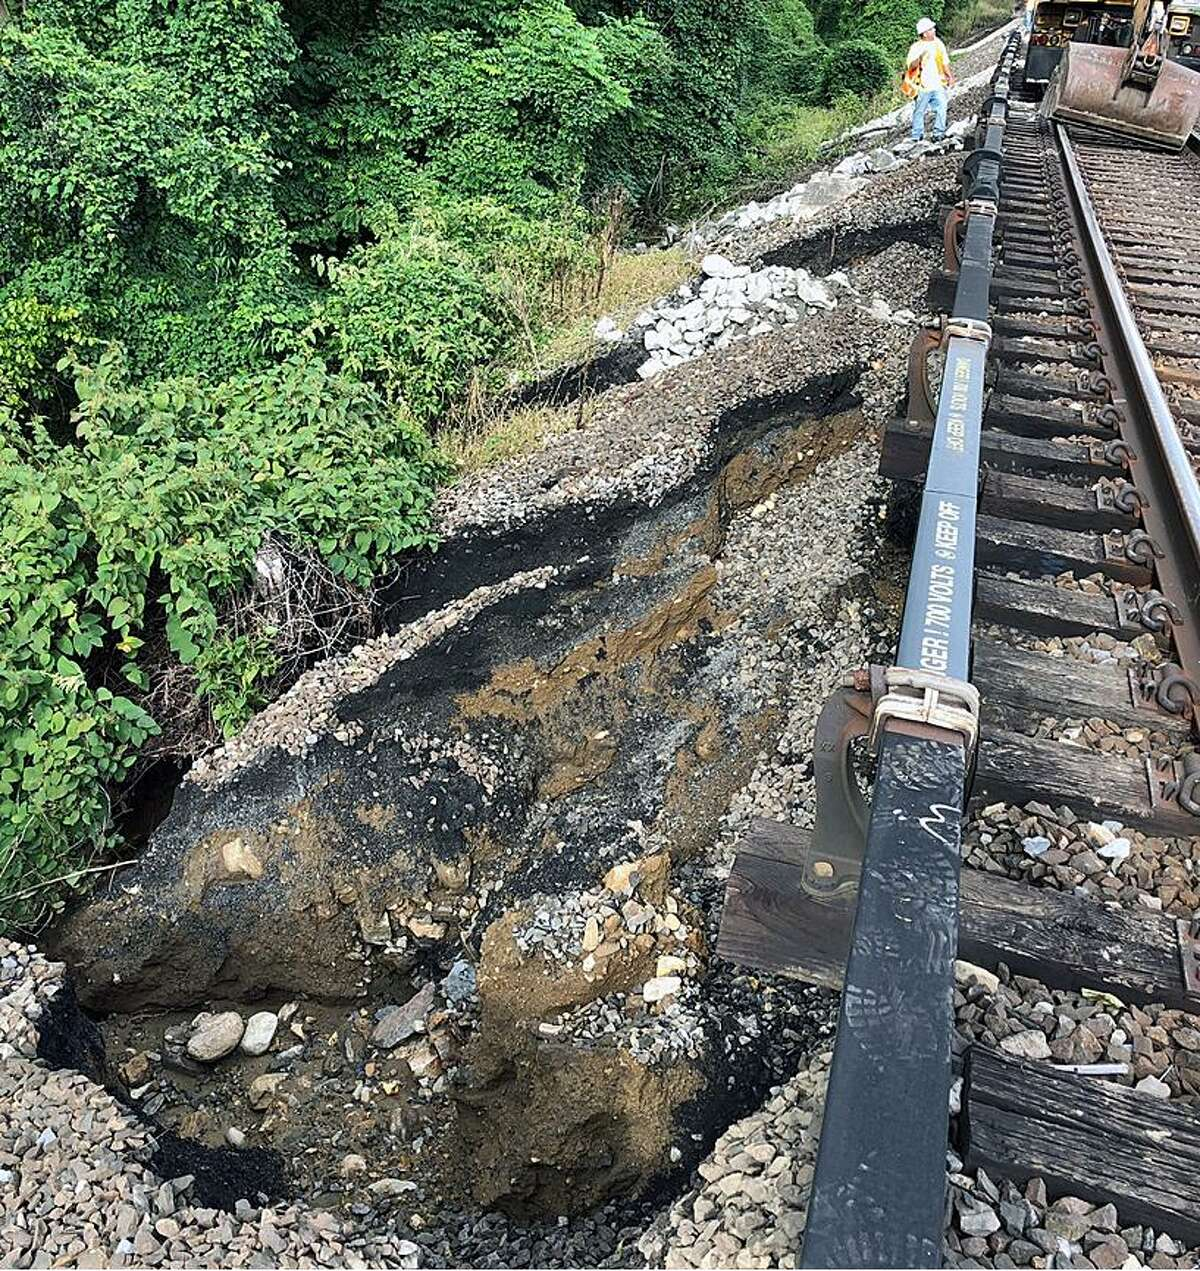 Metro-North shared these photos on Oct. 3, 2018, to show damage done during the storms on Oct. 2, 2018.